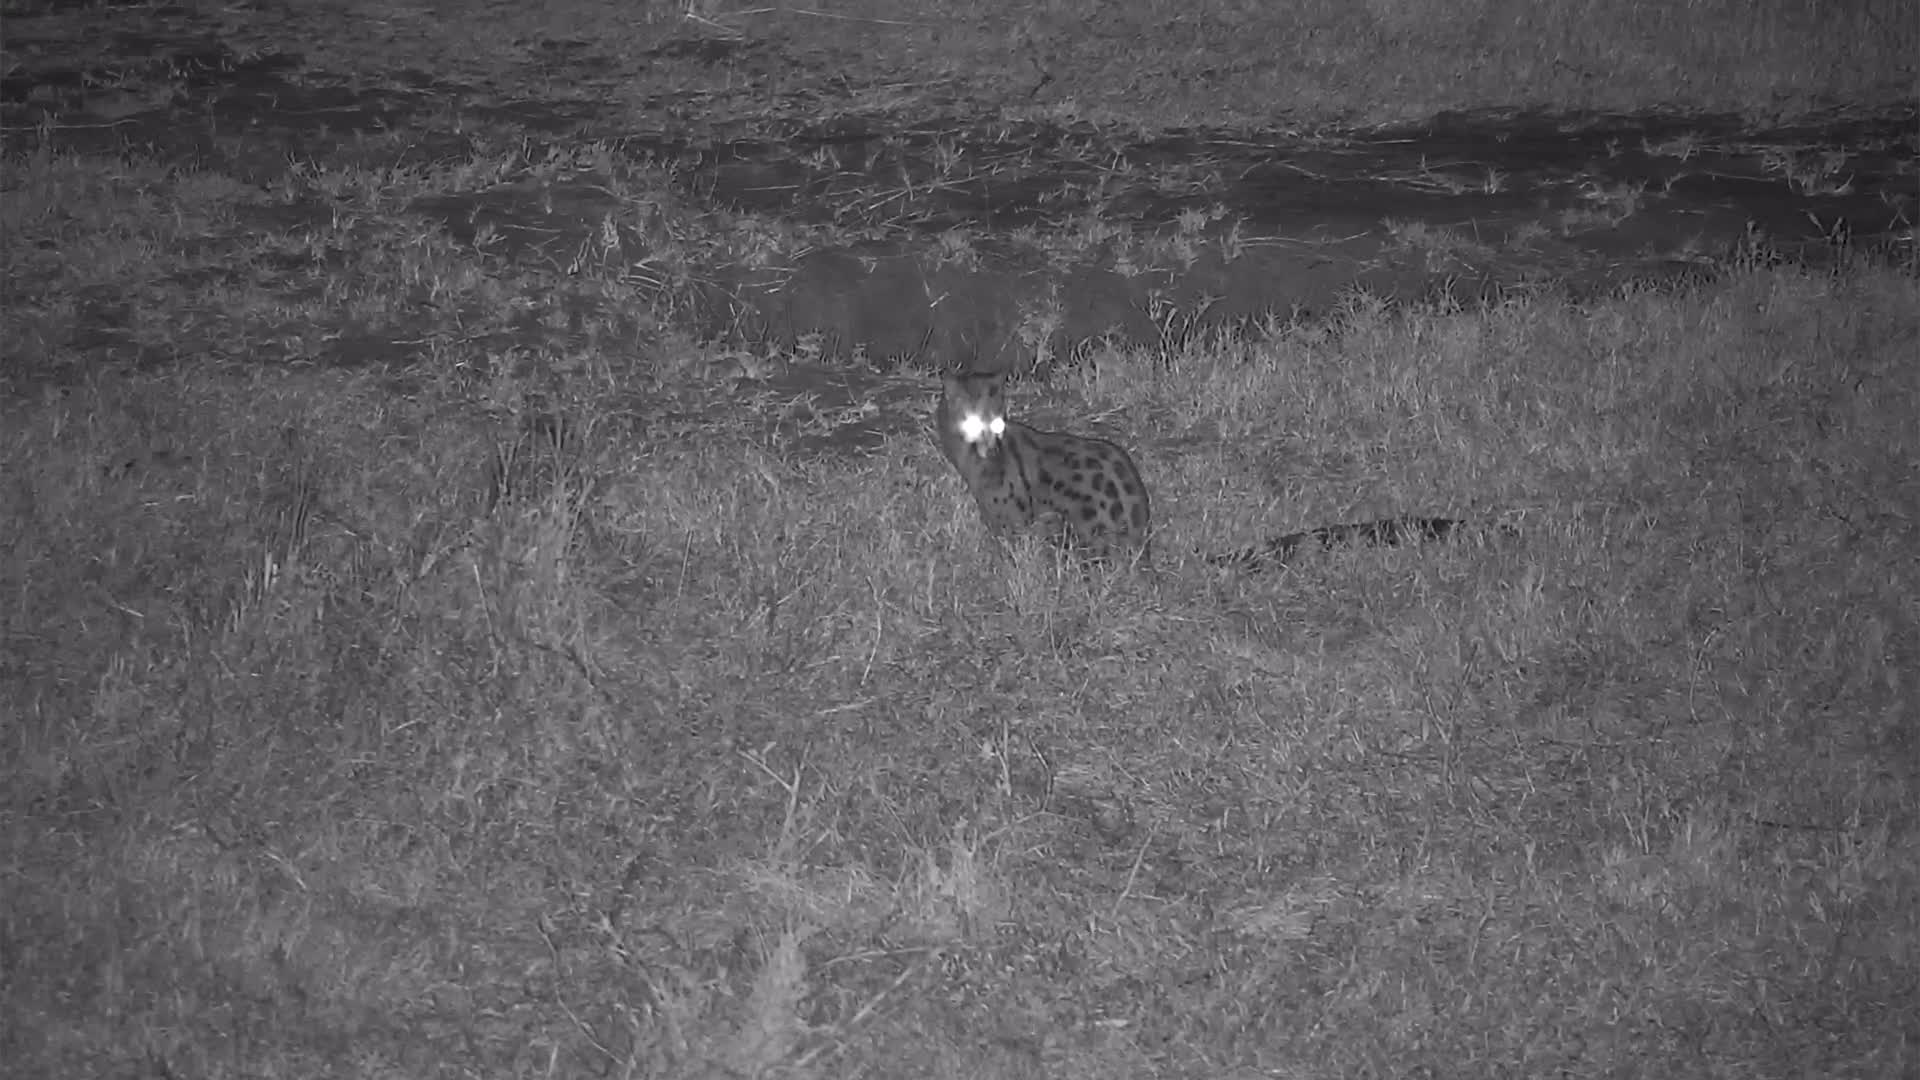 VIDEO: Genet on the prowl